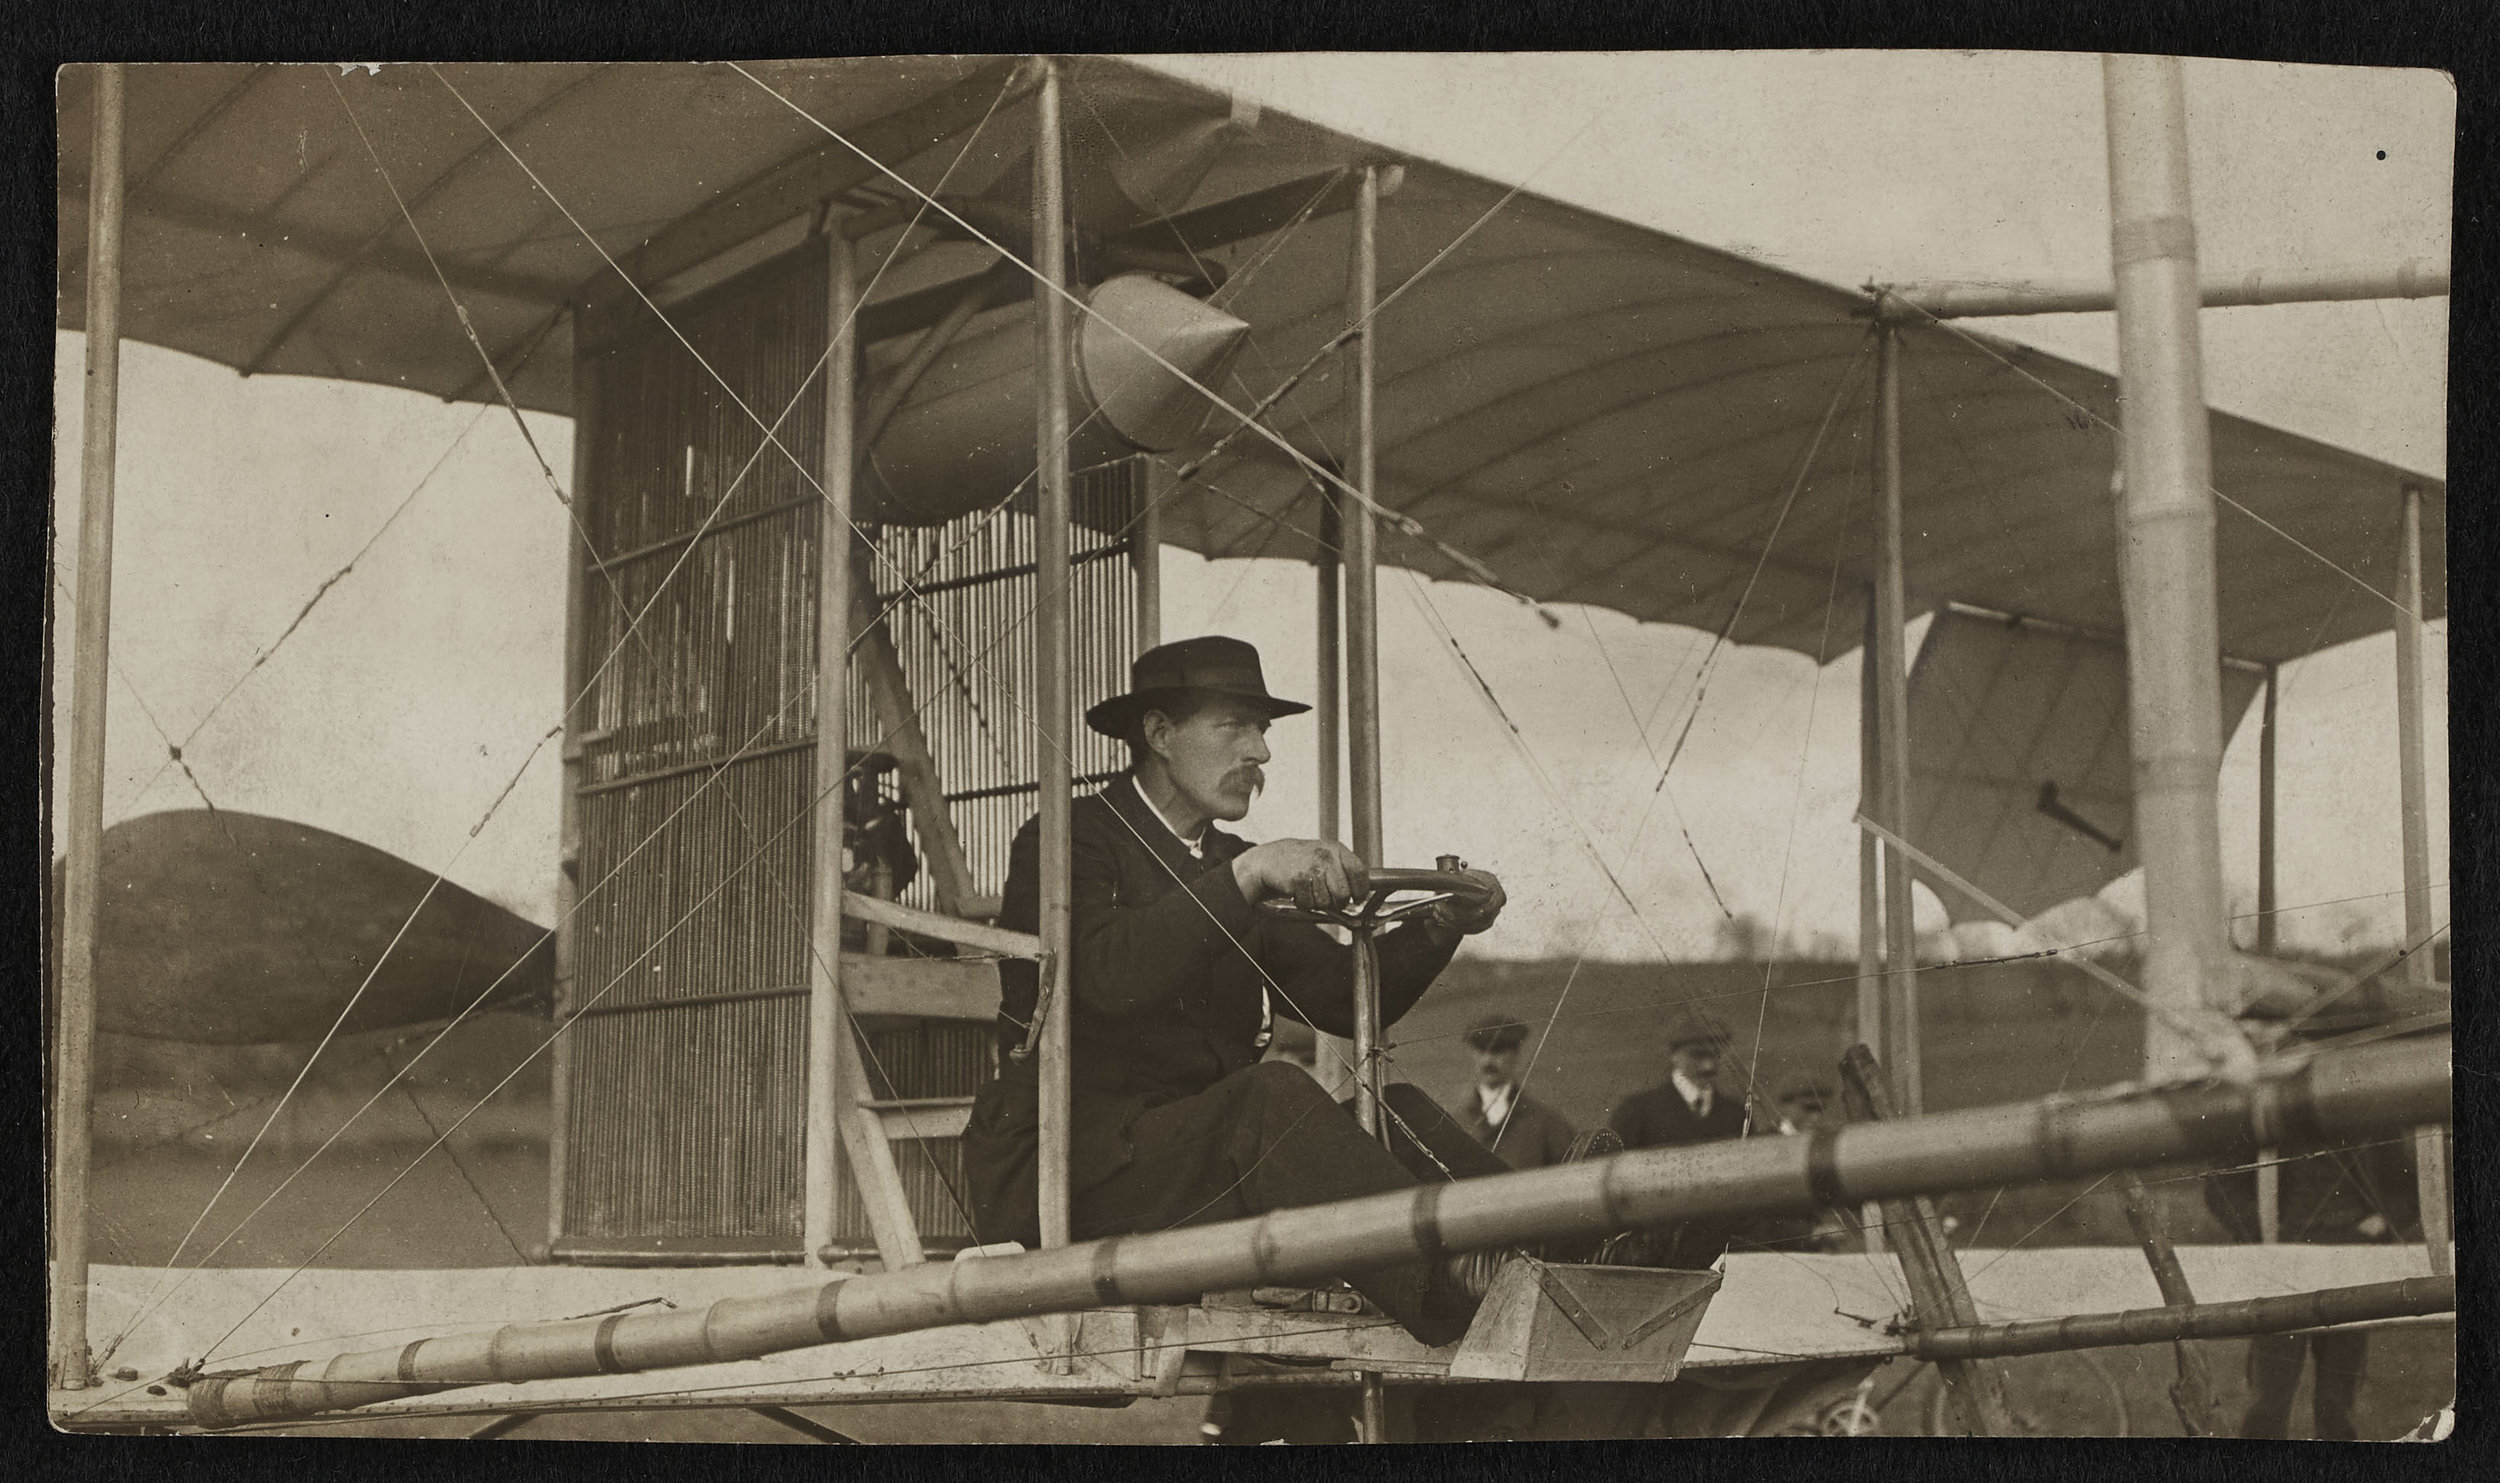 Revd Sidney Swann at the controls of his home-made flying machine